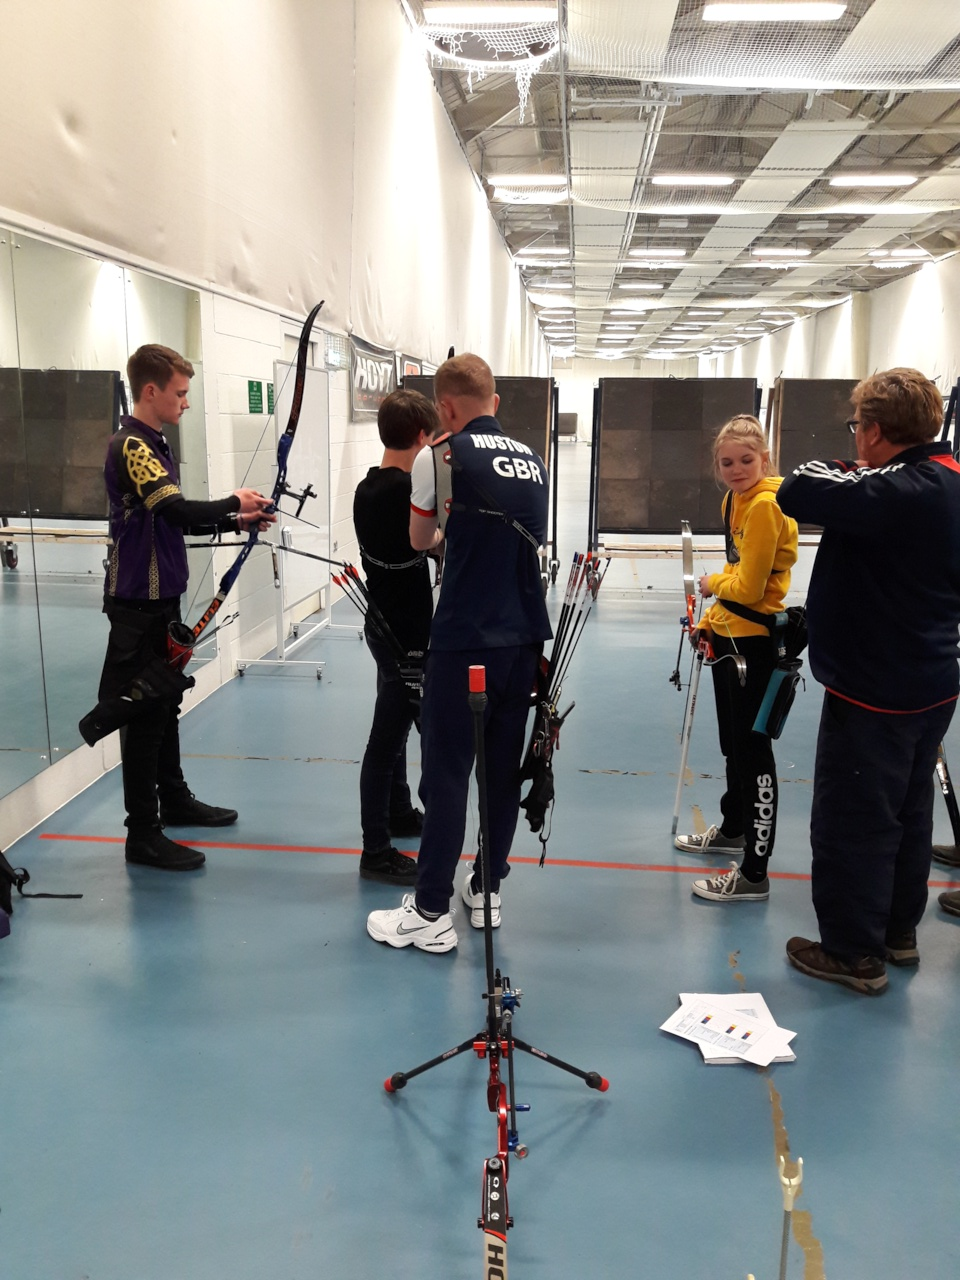 Archers on target for Olympic coaching